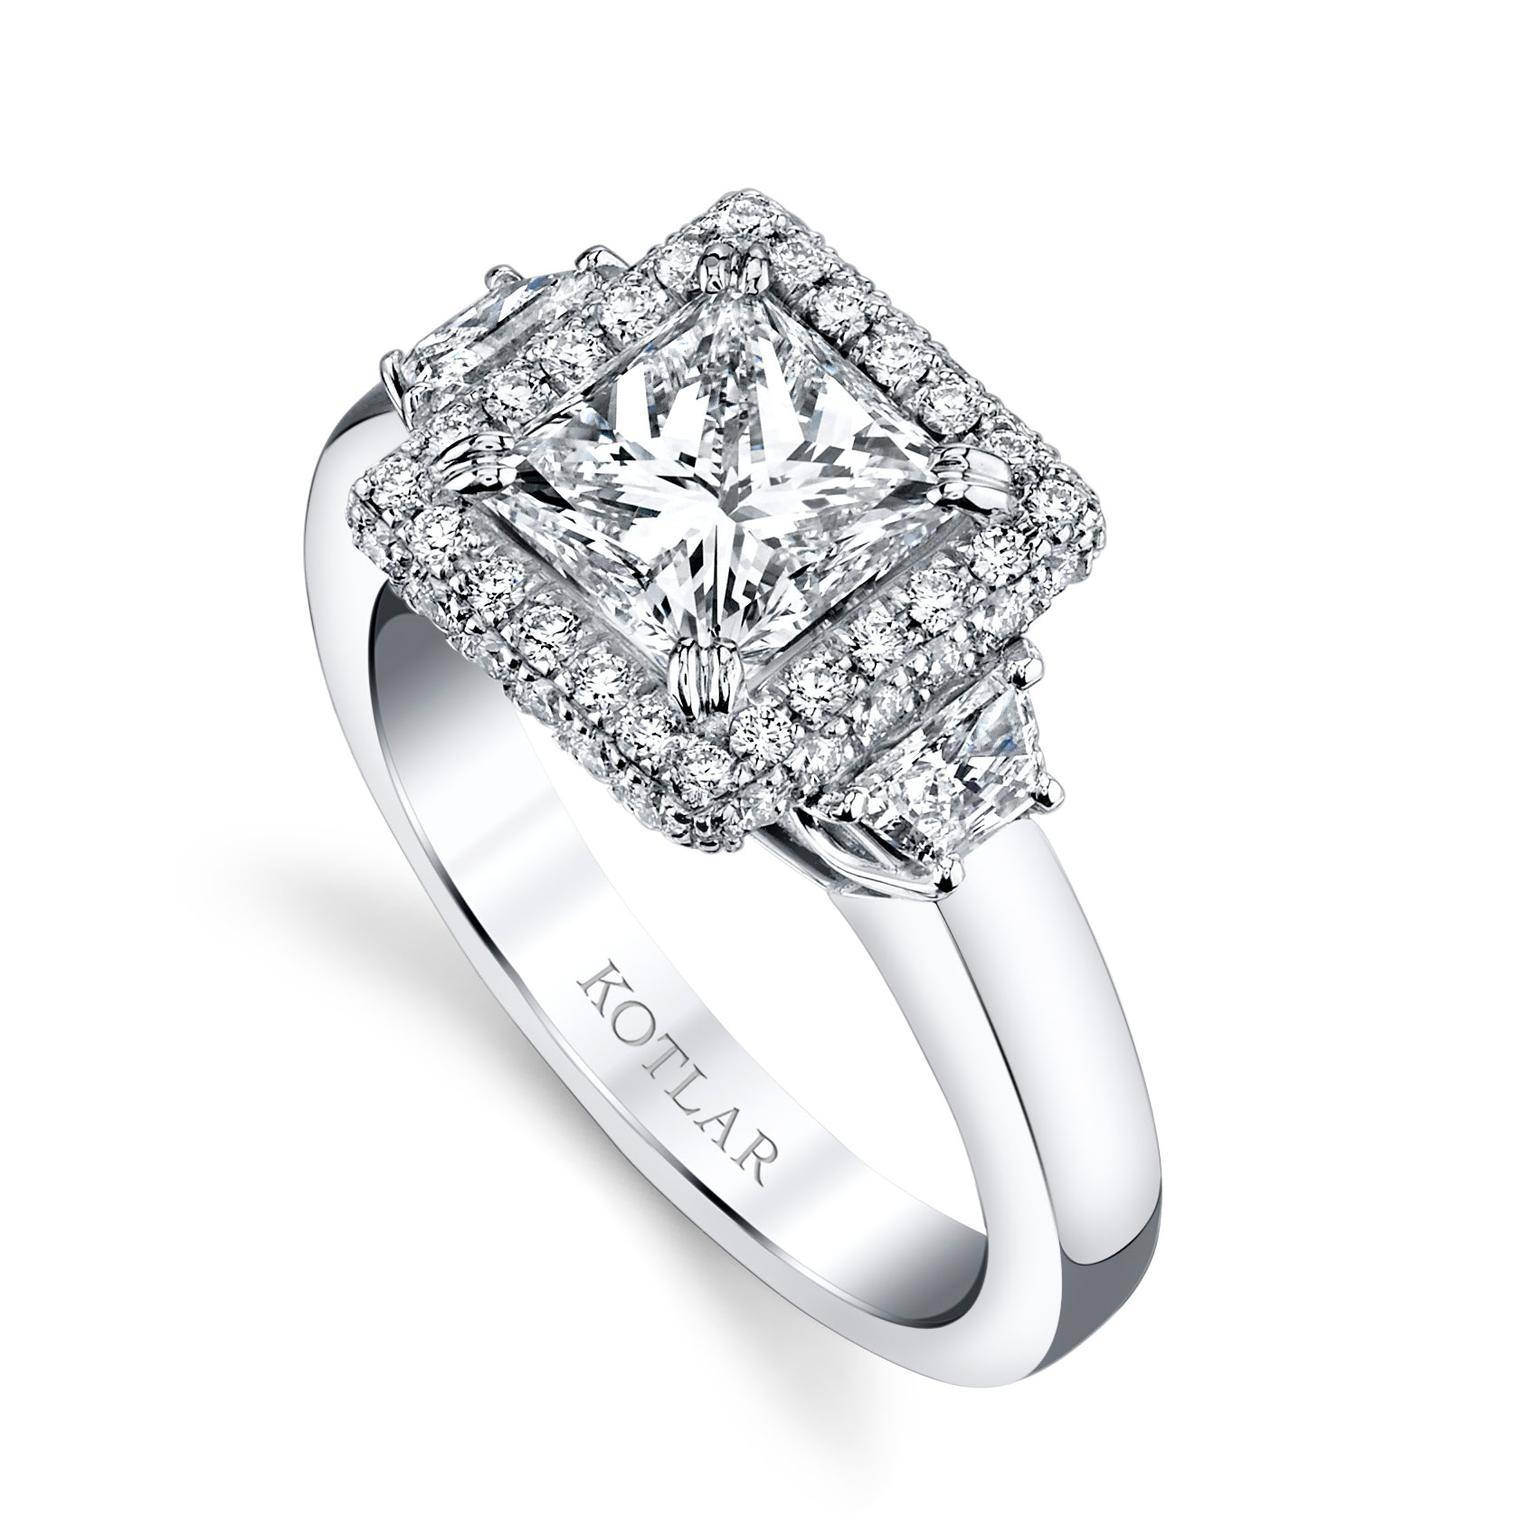 The Romantic Appeal Of Princess Cut Engagement Rings | The For Unique Princess Cut Diamond Engagement Rings (Gallery 12 of 15)